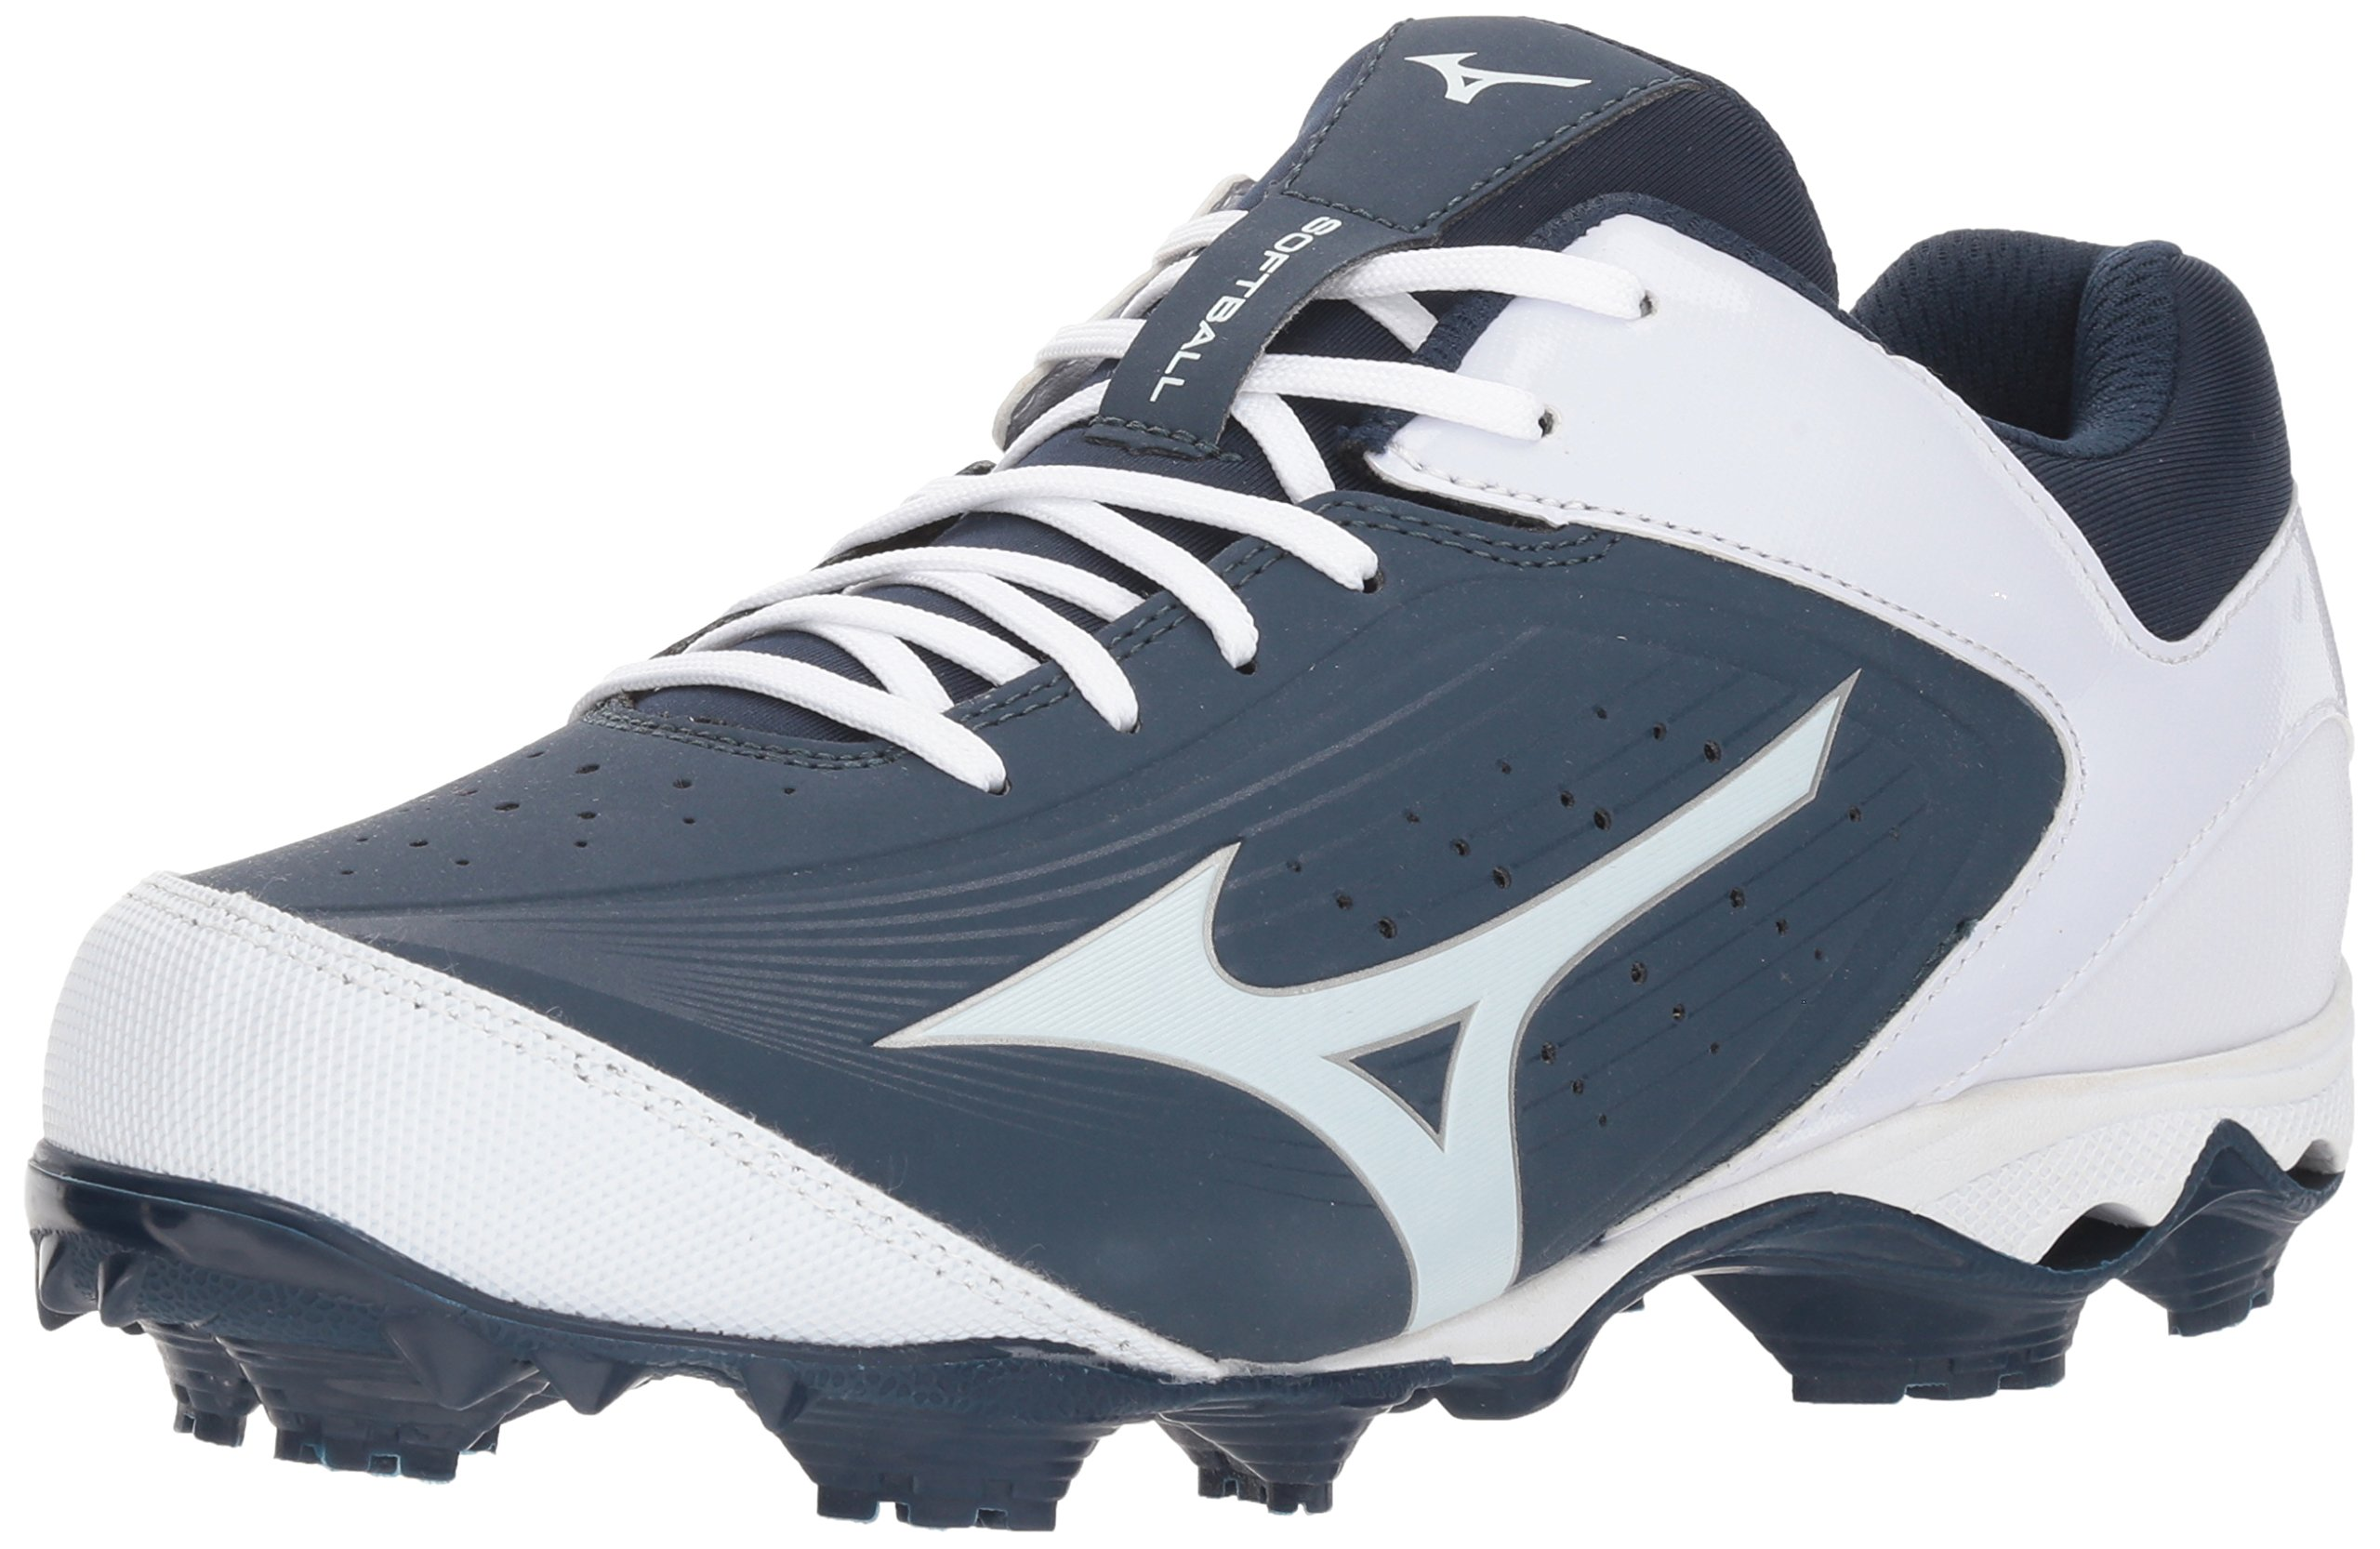 Mizuno Women's 9-Spike Advanced Finch Elite 3 Fastpitch Cleat Softball Shoe, Navy/White, 7 B US by Mizuno